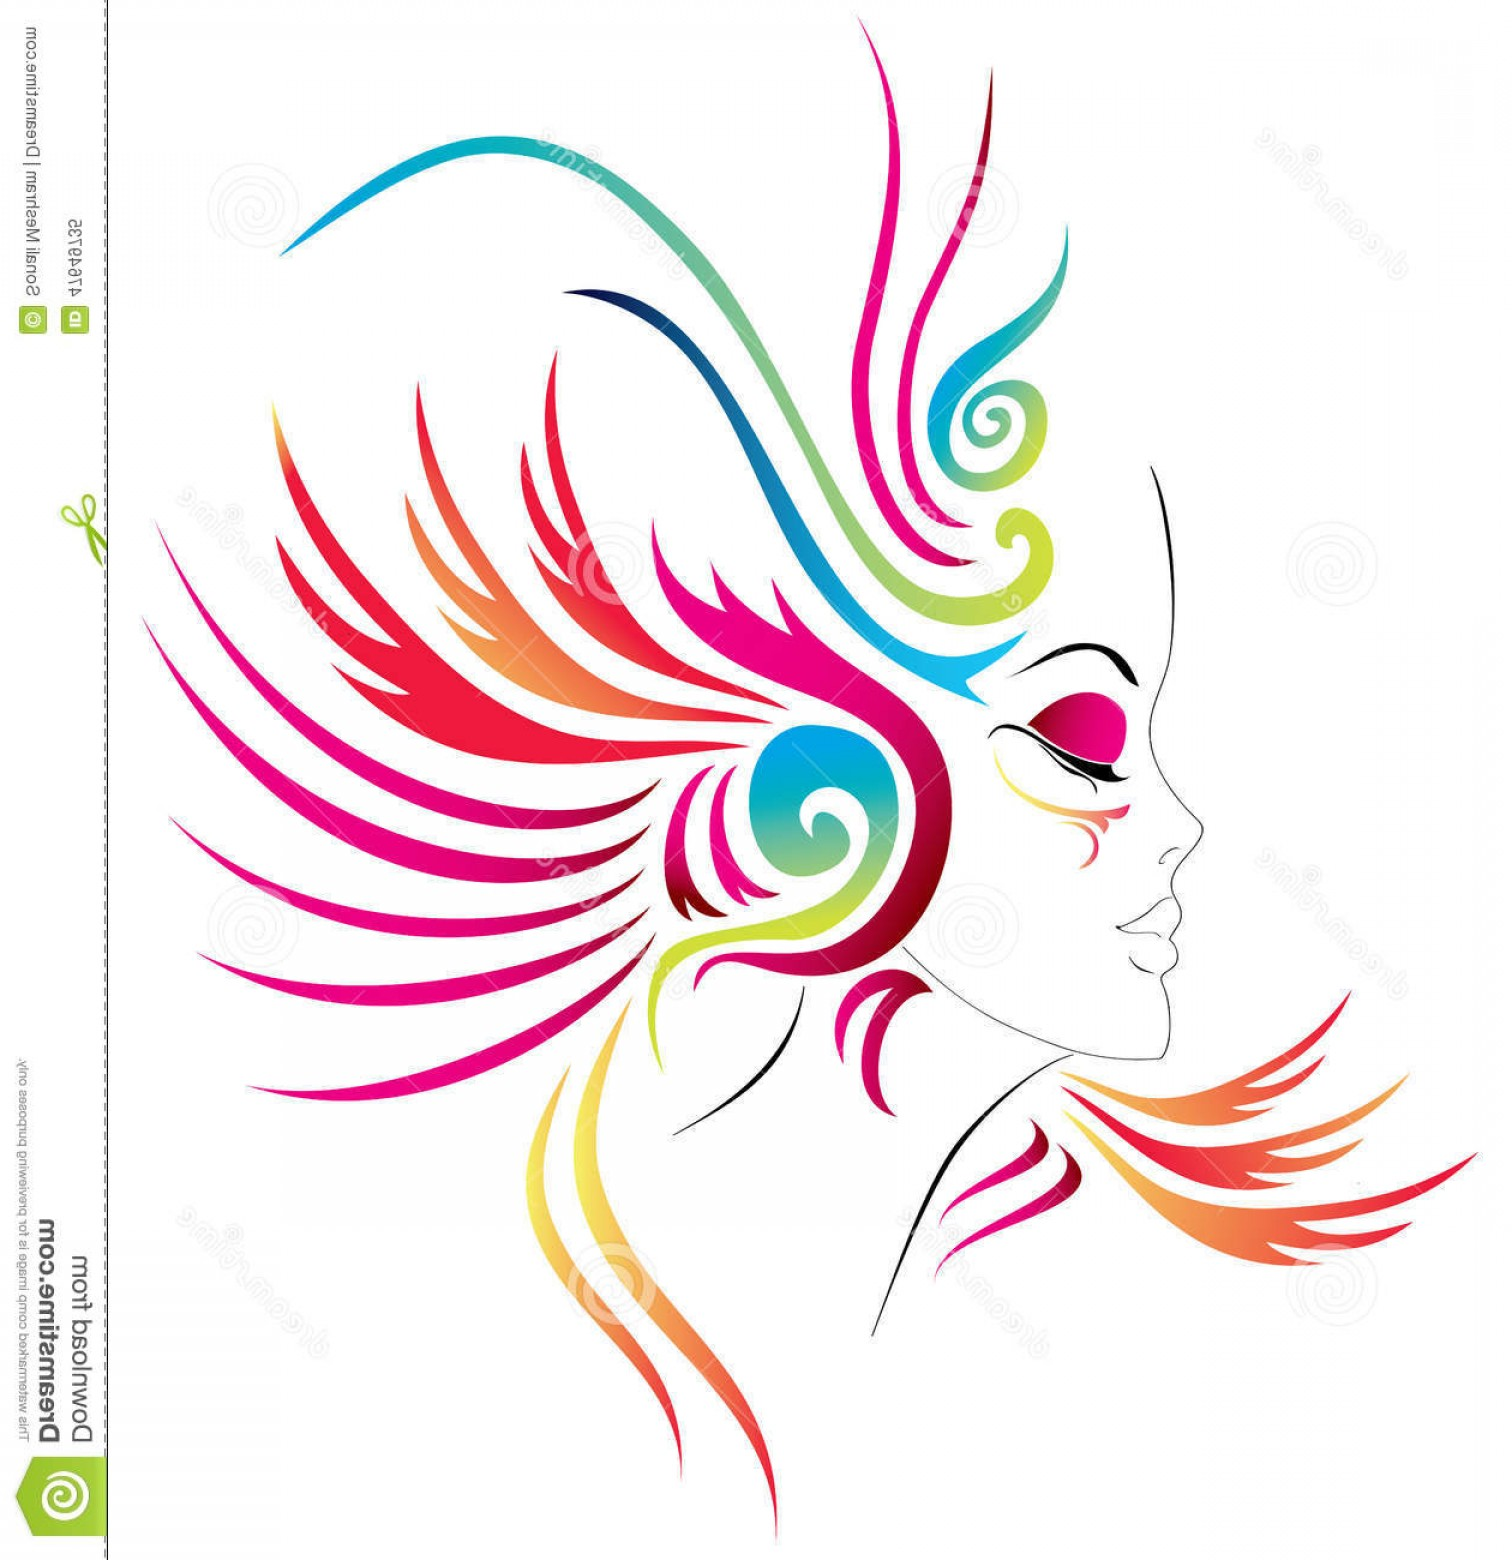 Carnival Vector Feather Art: Stock Illustration Carnival Girl Abstract Face Colorful Feathers Vector Available Image